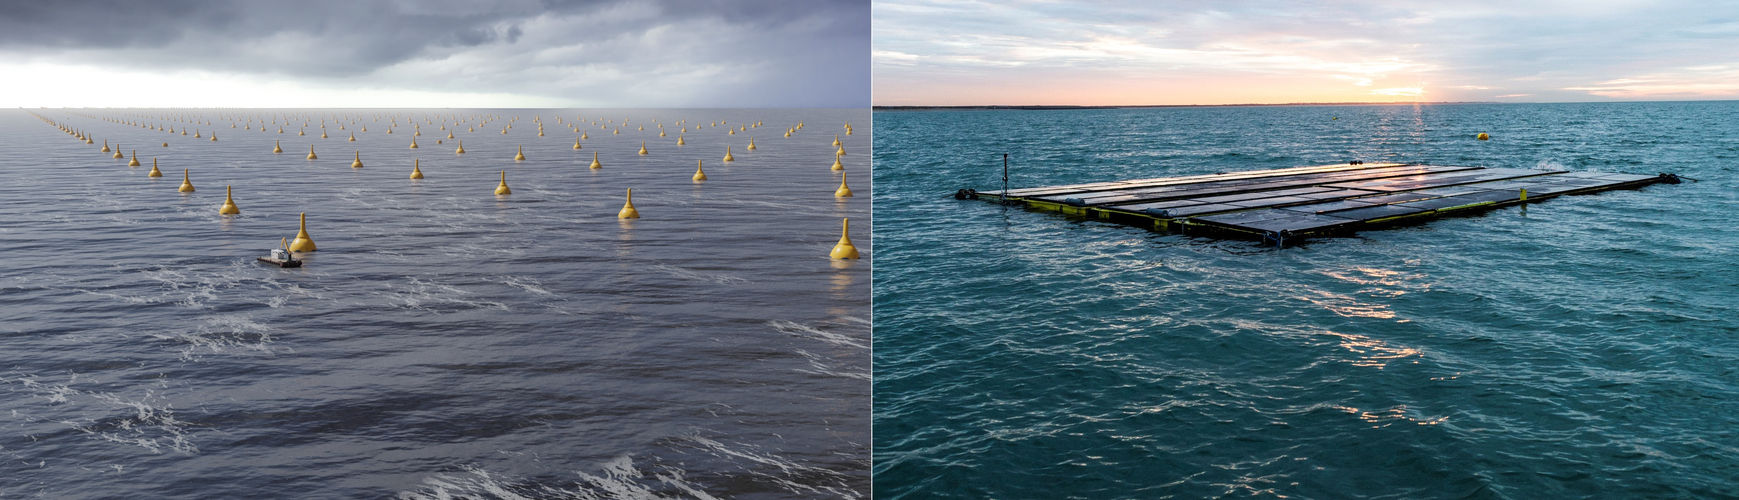 Illustration/CorPower Ocean's wave energy tech; and Oceans of Energy's floating solar unit (Courtesy of CorPower Ocean/Oceans of Energy)